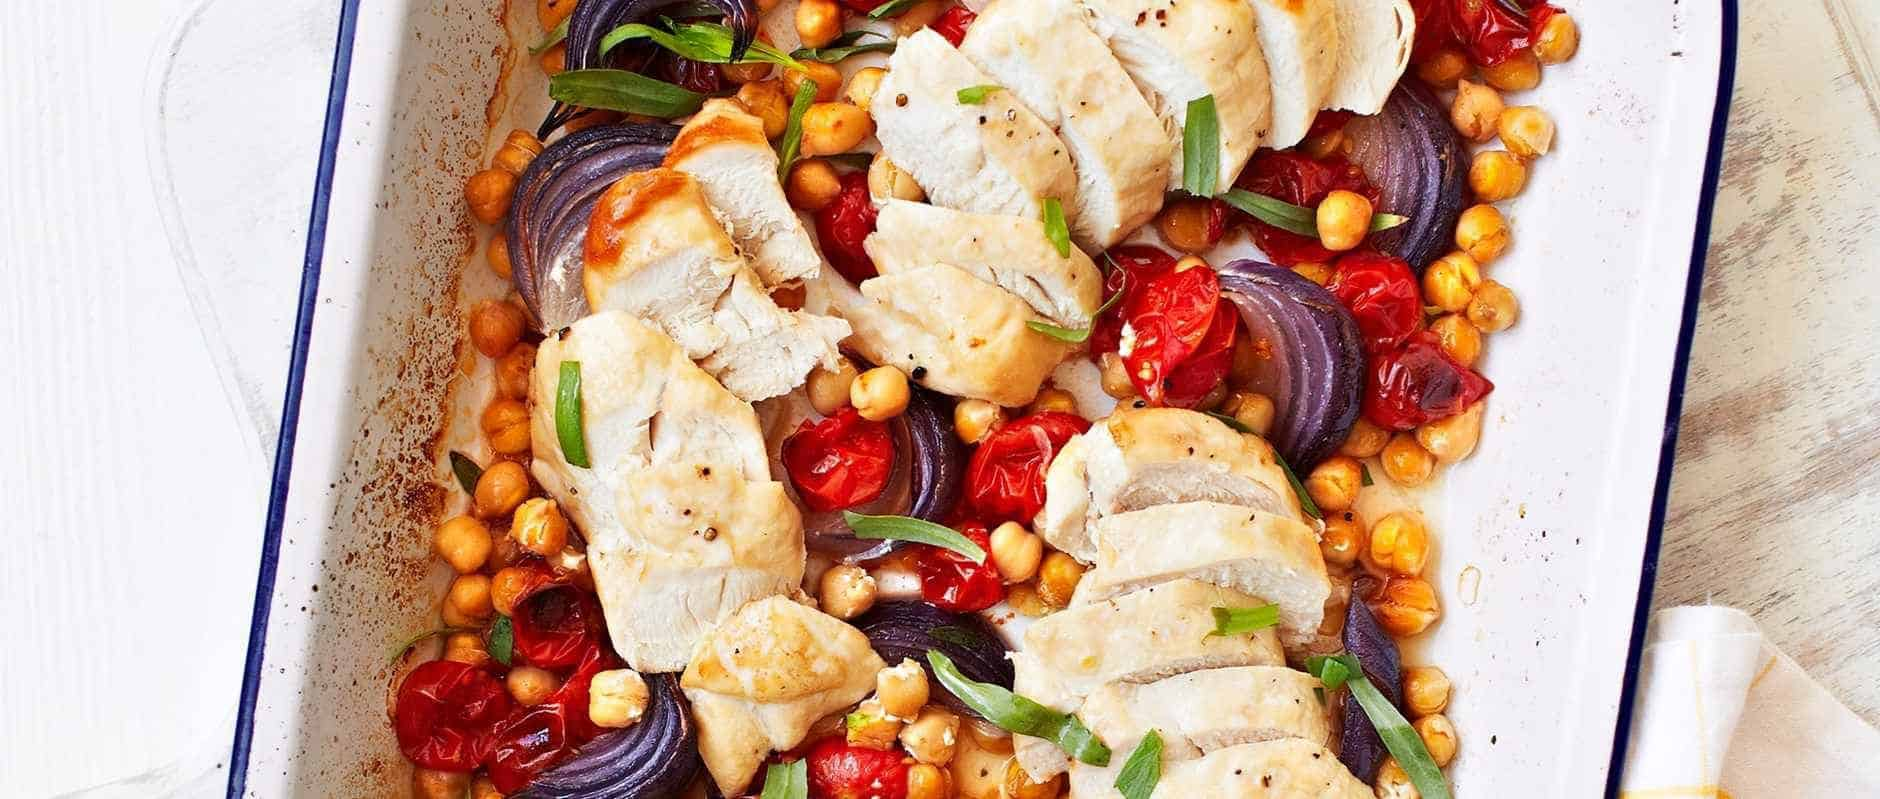 Quick-roast Chicken with Tomatoes, Chickpeas and Tarragon